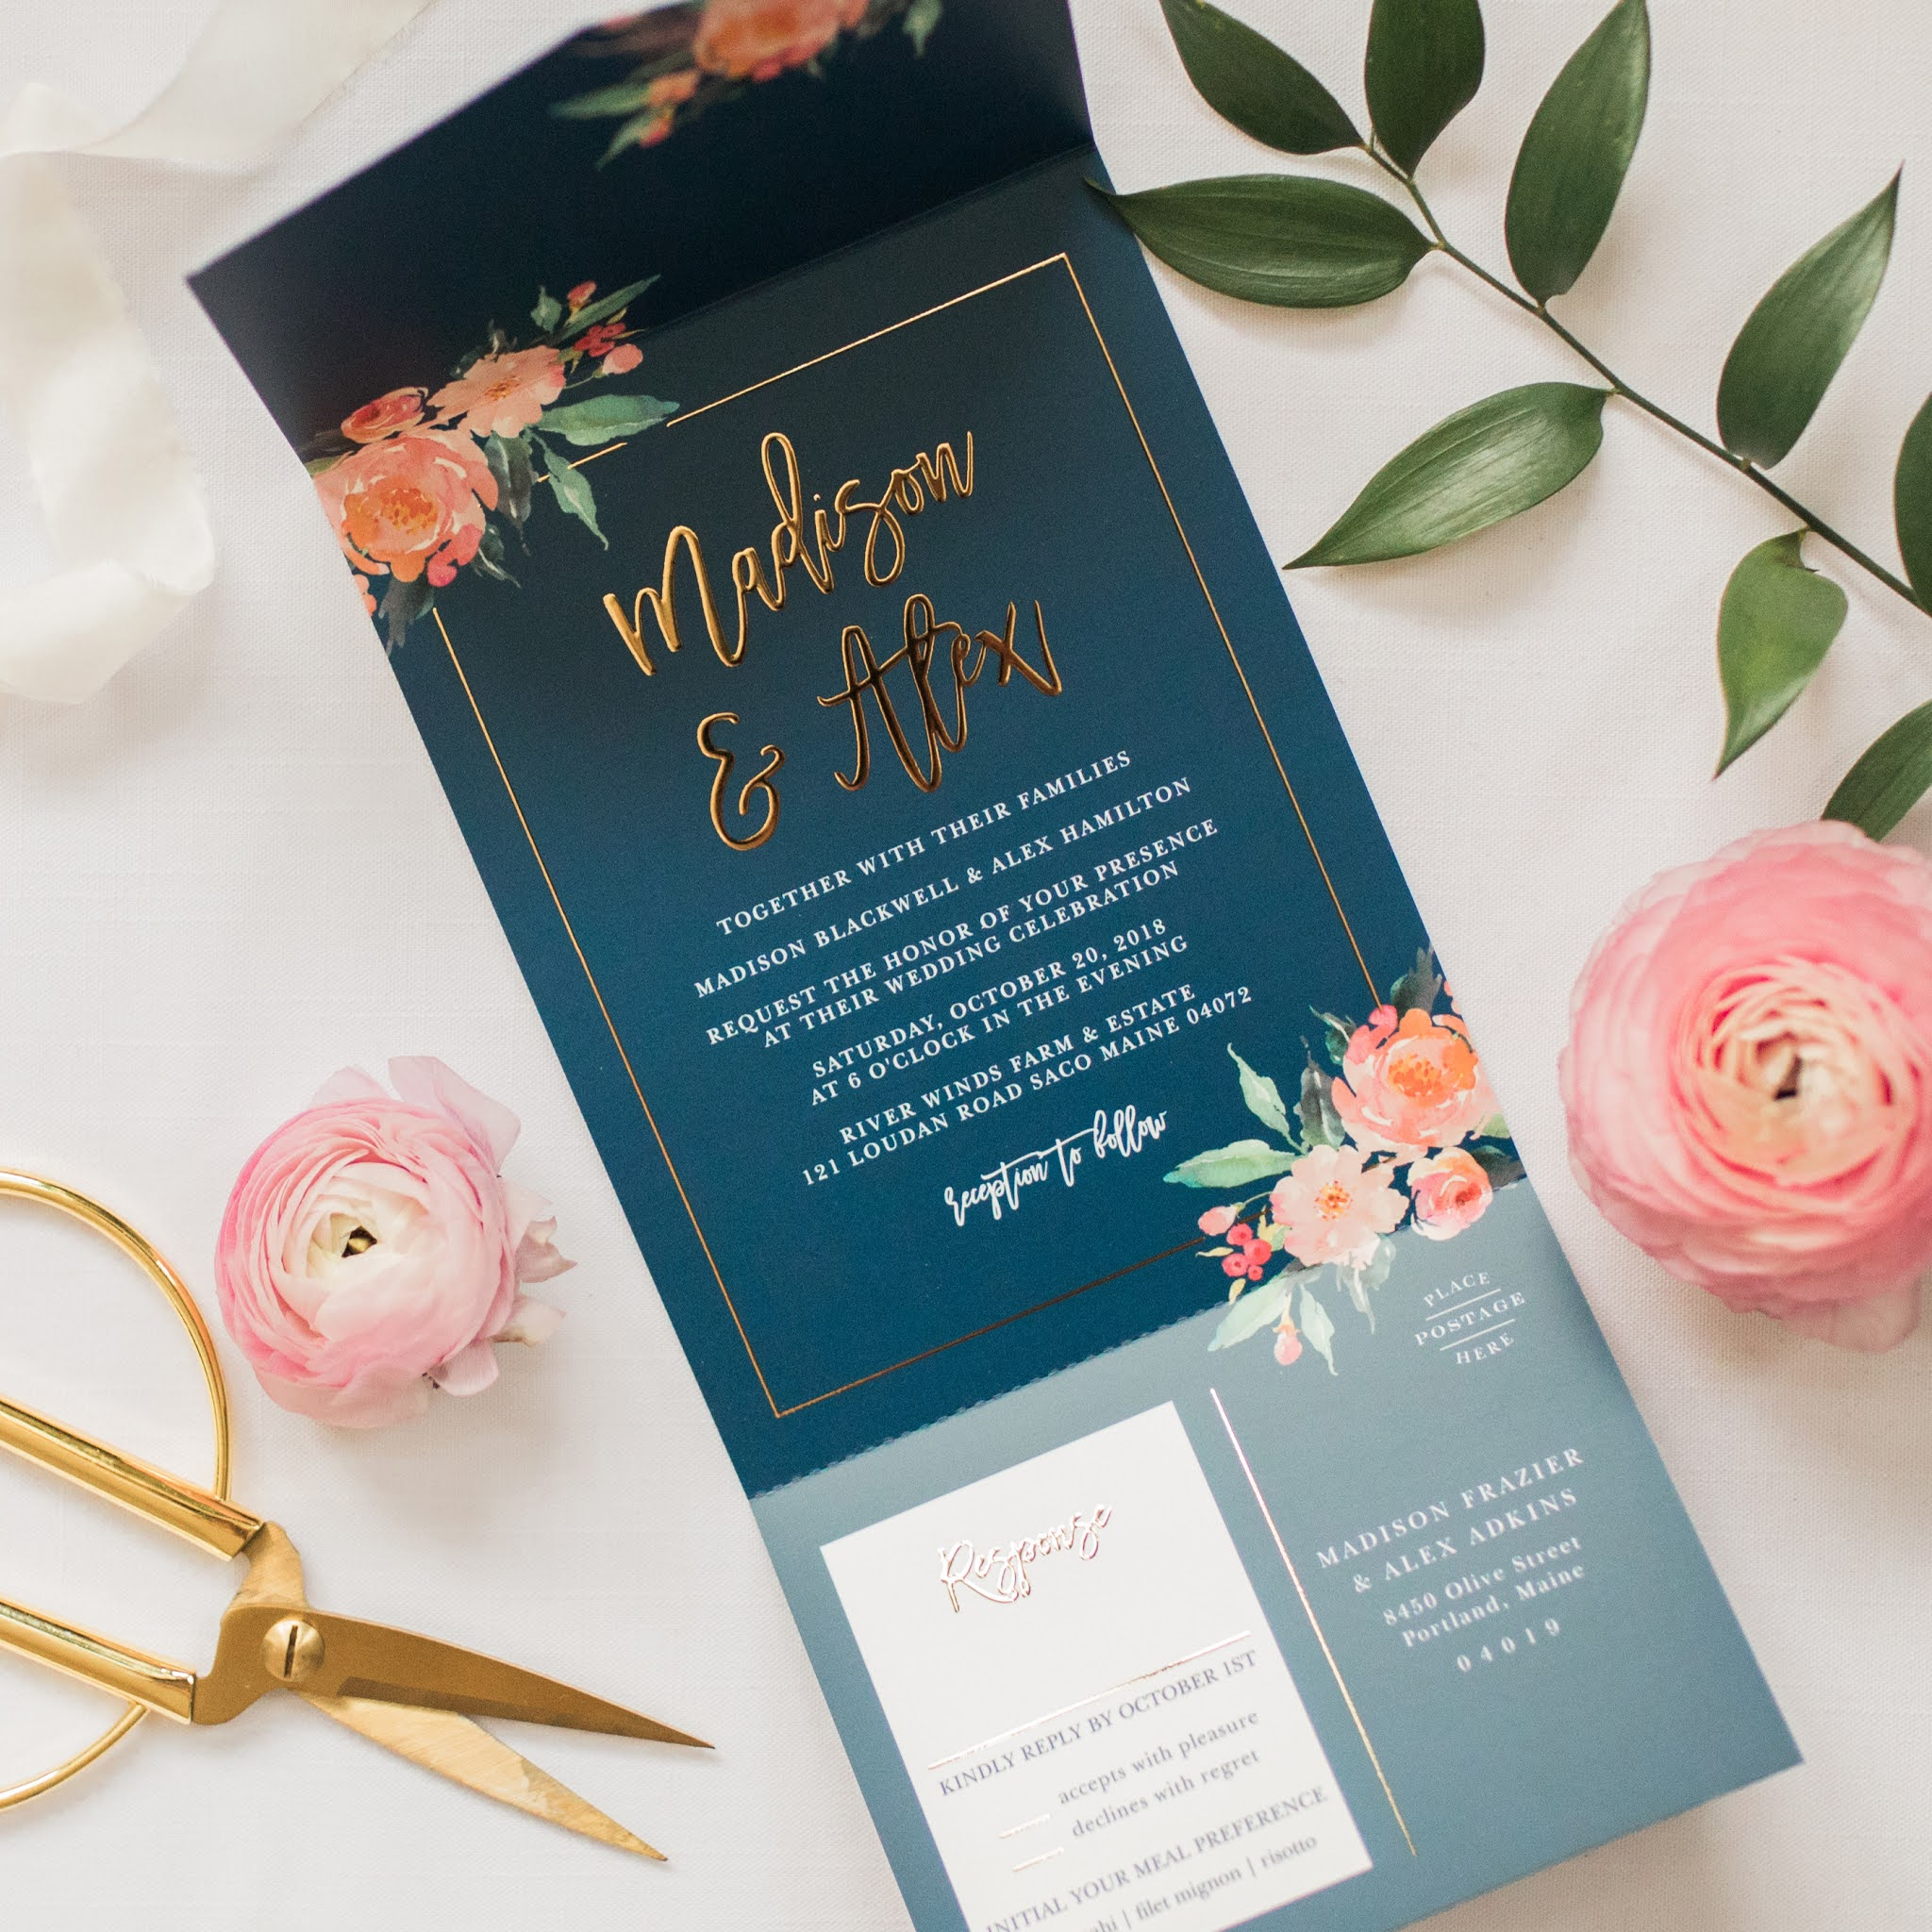 This is how to choose the perfect wedding invitation according to your style